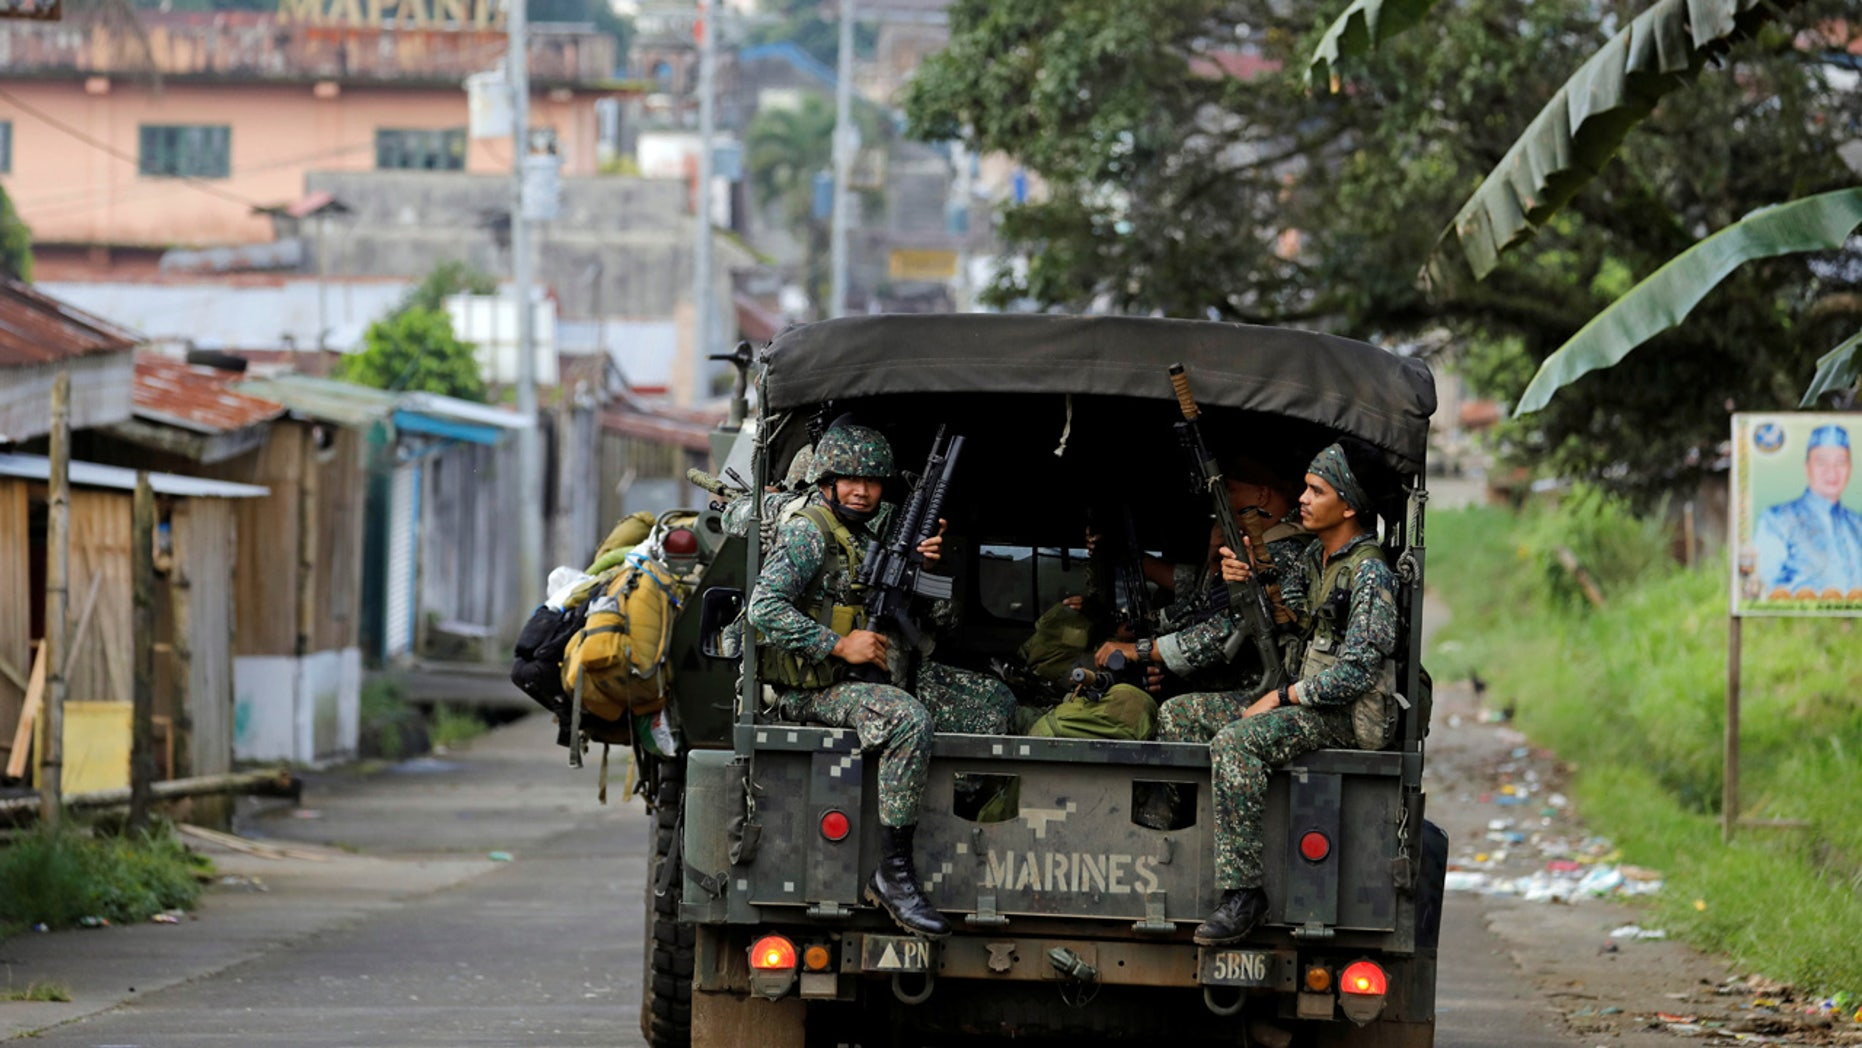 Philippine Marines ride in a military vehicle as they advance their position in Marawi City, southern Philippines May 30, 2017. REUTERS/Erik De Castro - RTX3864E